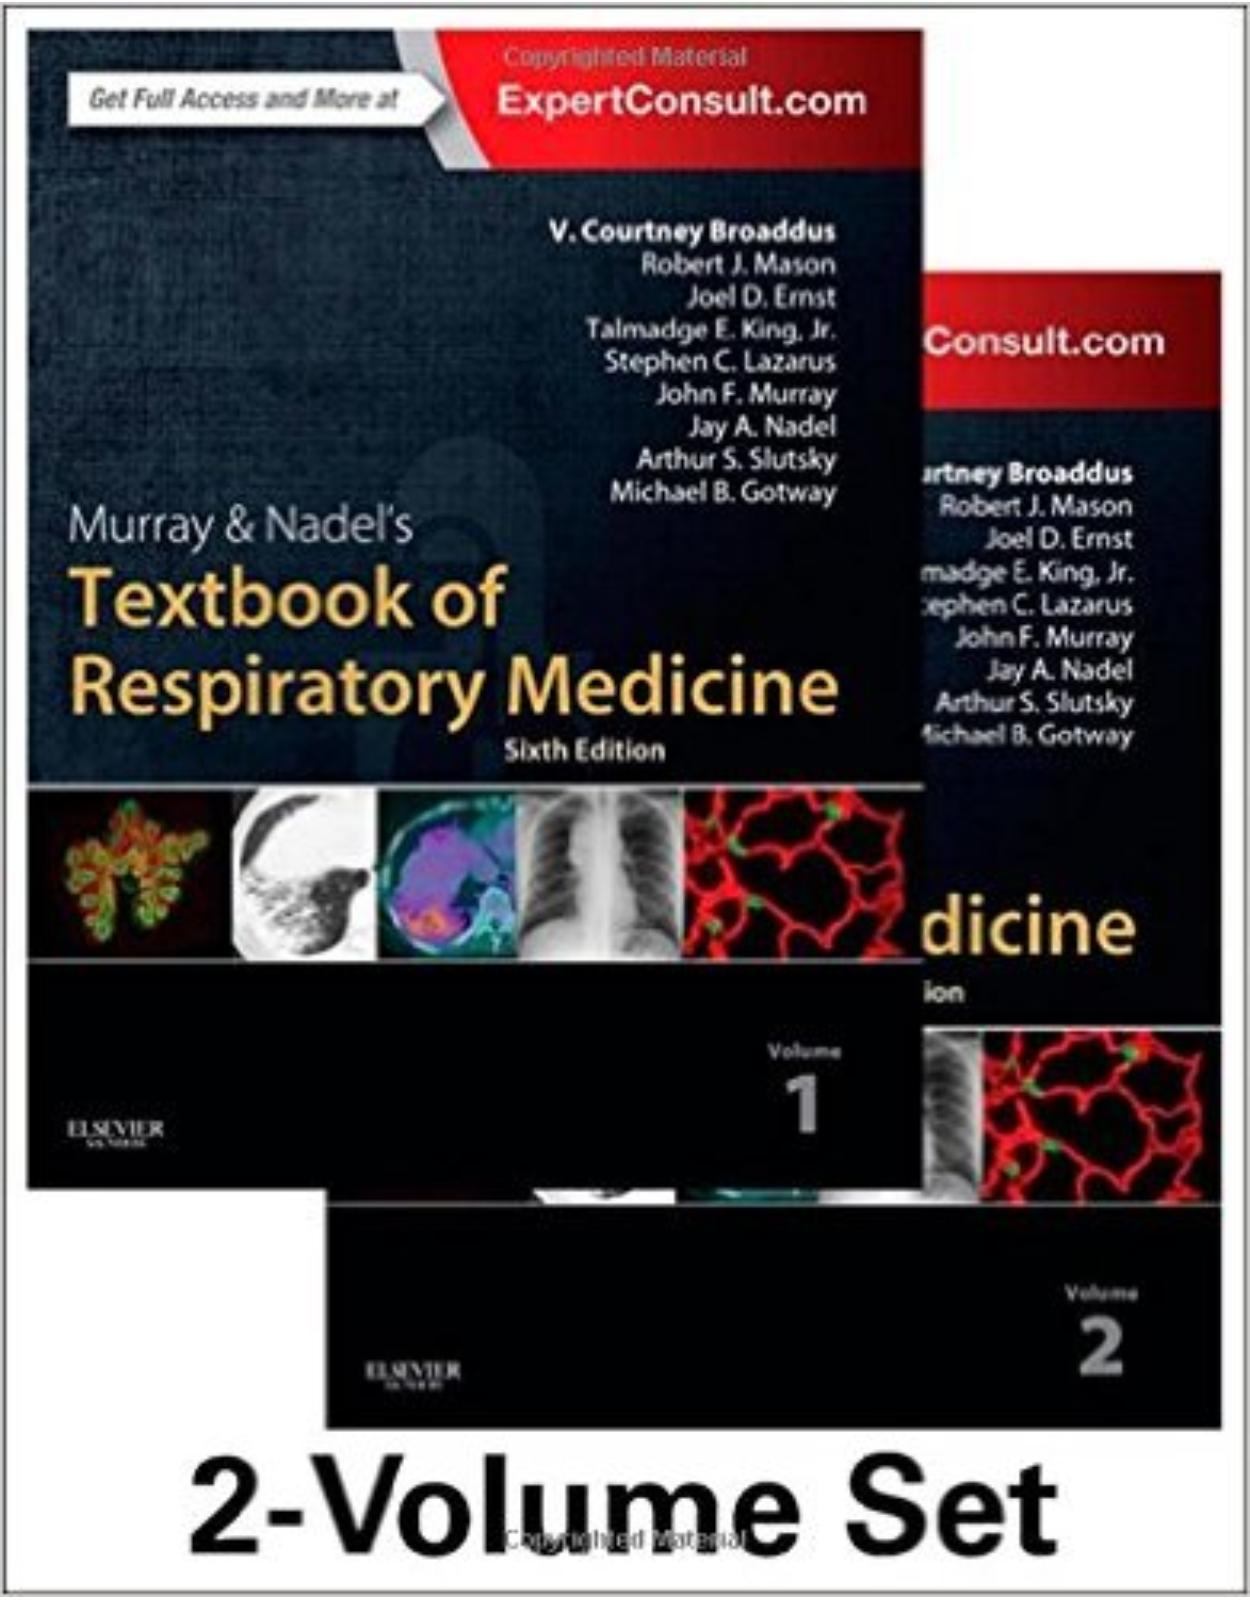 Murray & Nadel's Textbook of Respiratory Medicine, 2-Volume Set, 6e